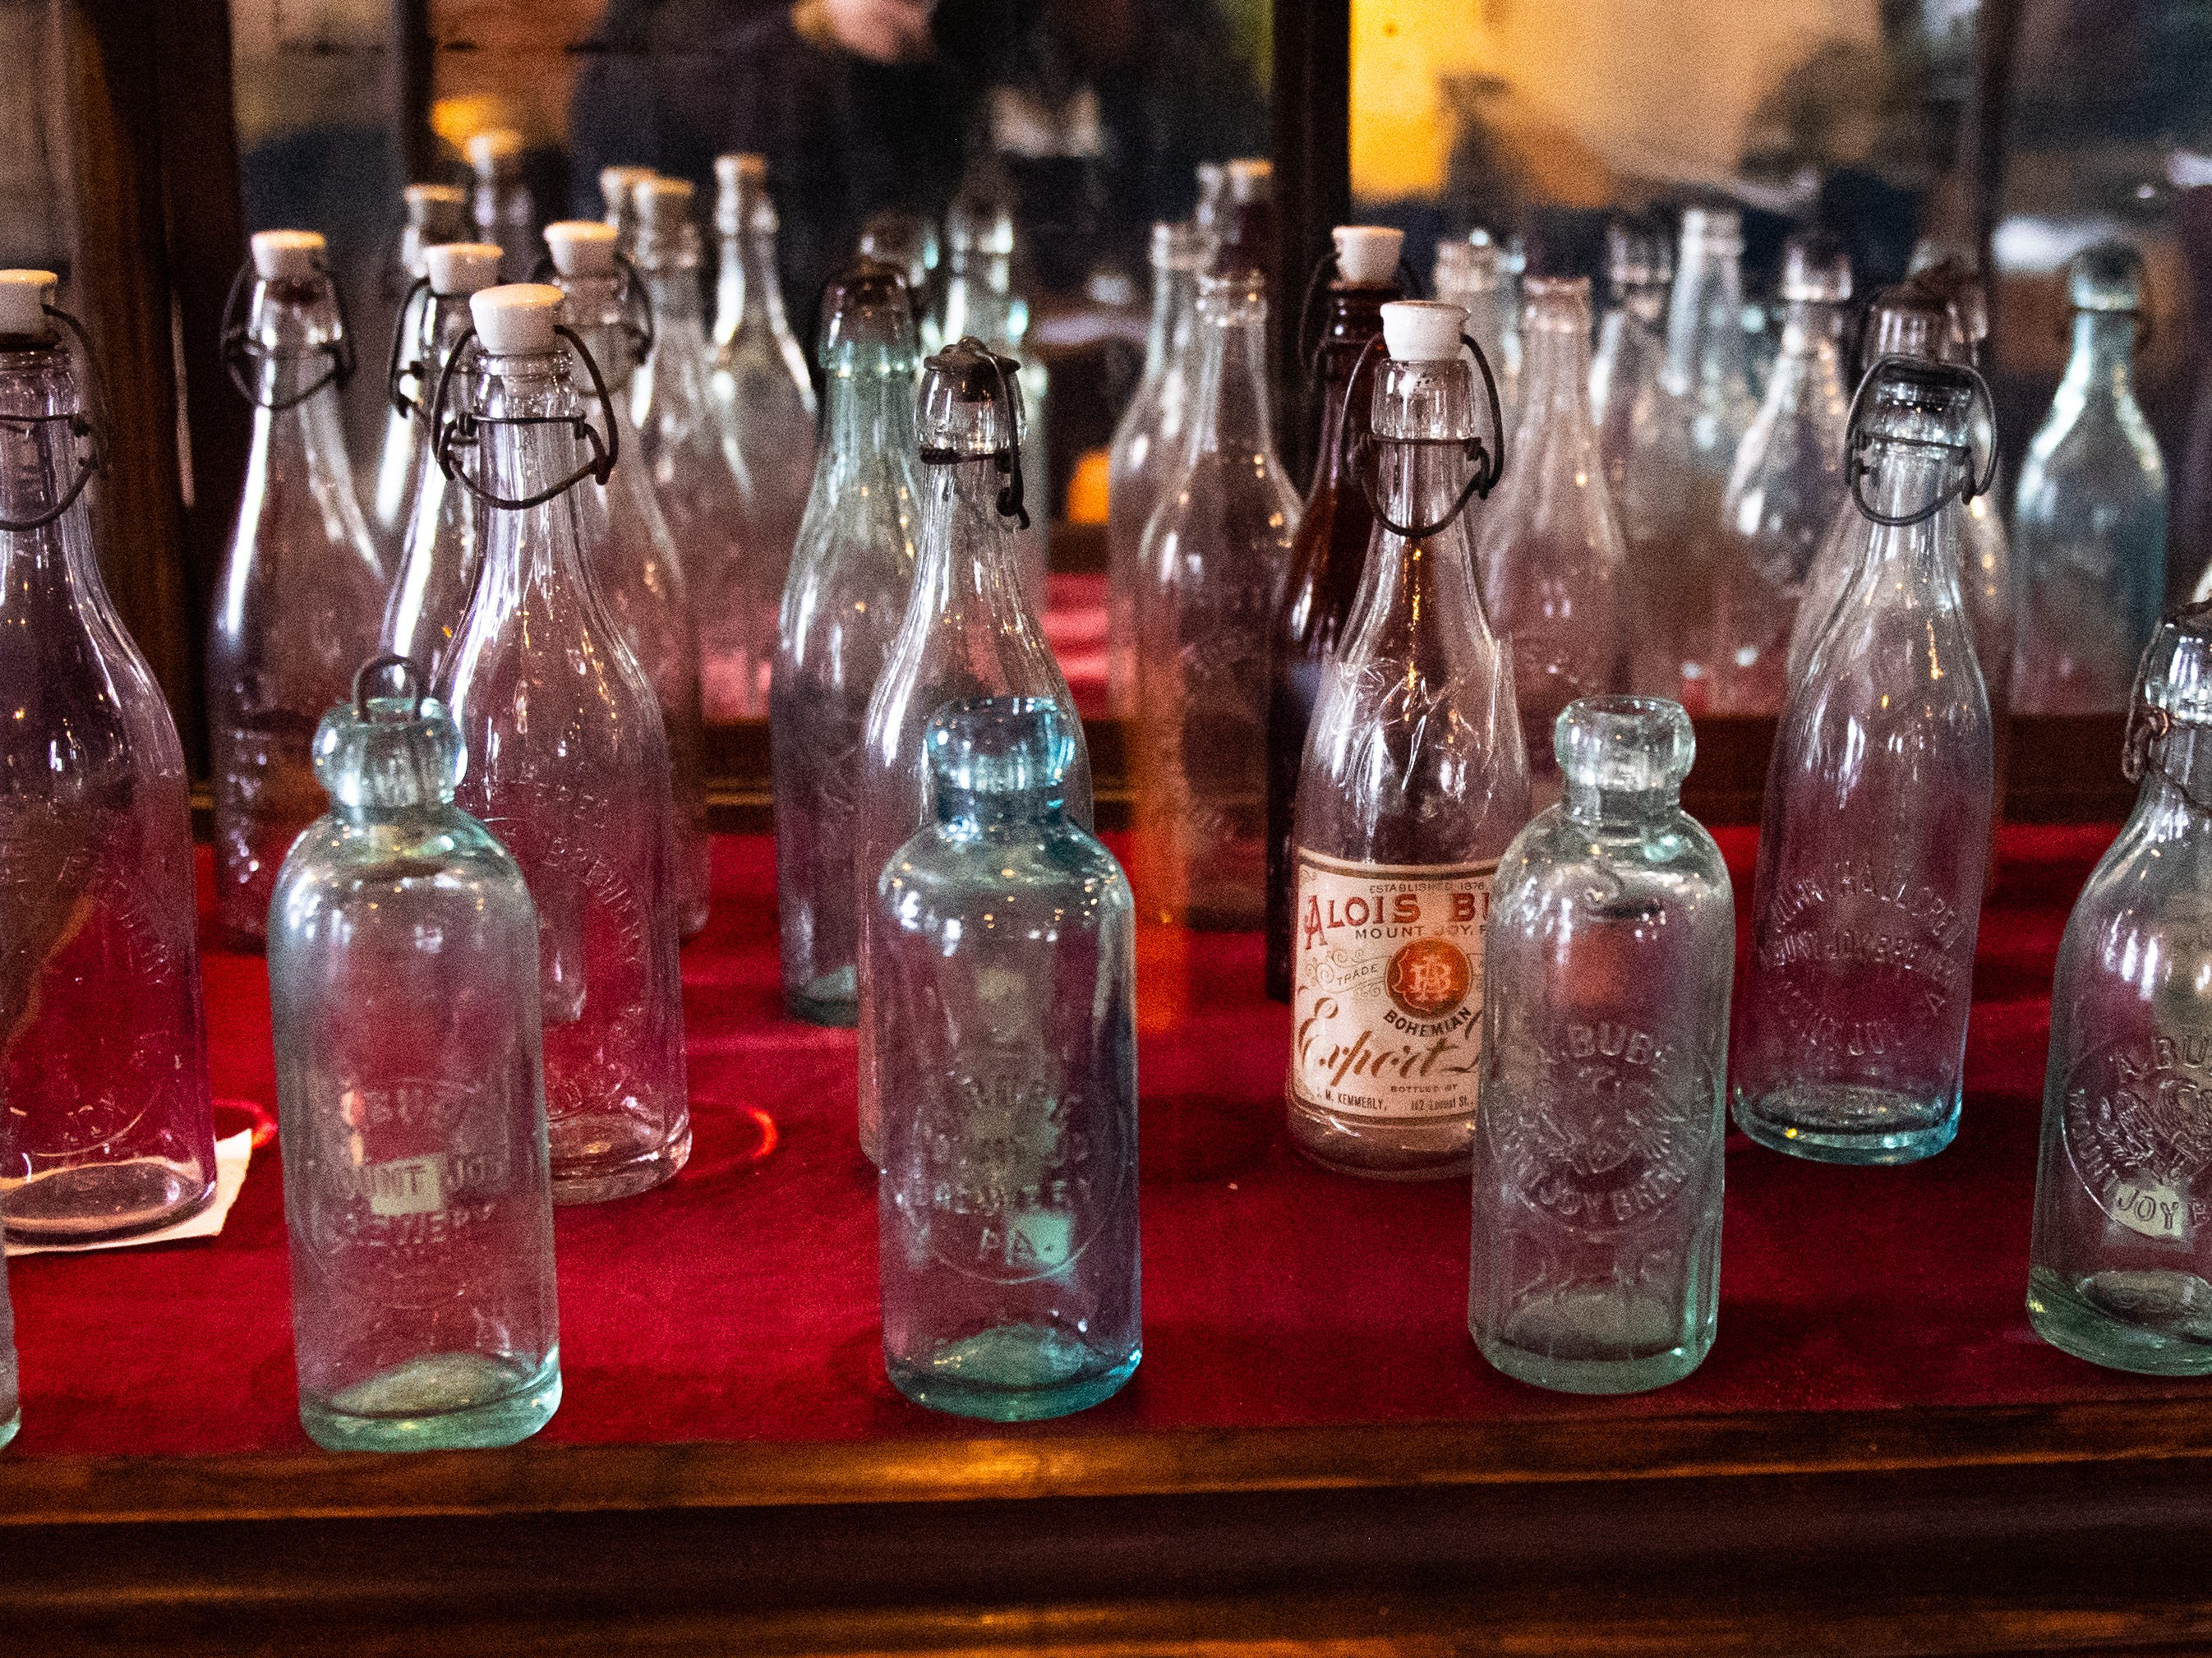 The bottles in this case date back many years and are proudly displayed in the Cooper Shed at Bube's Brewery, February 22, 2019.